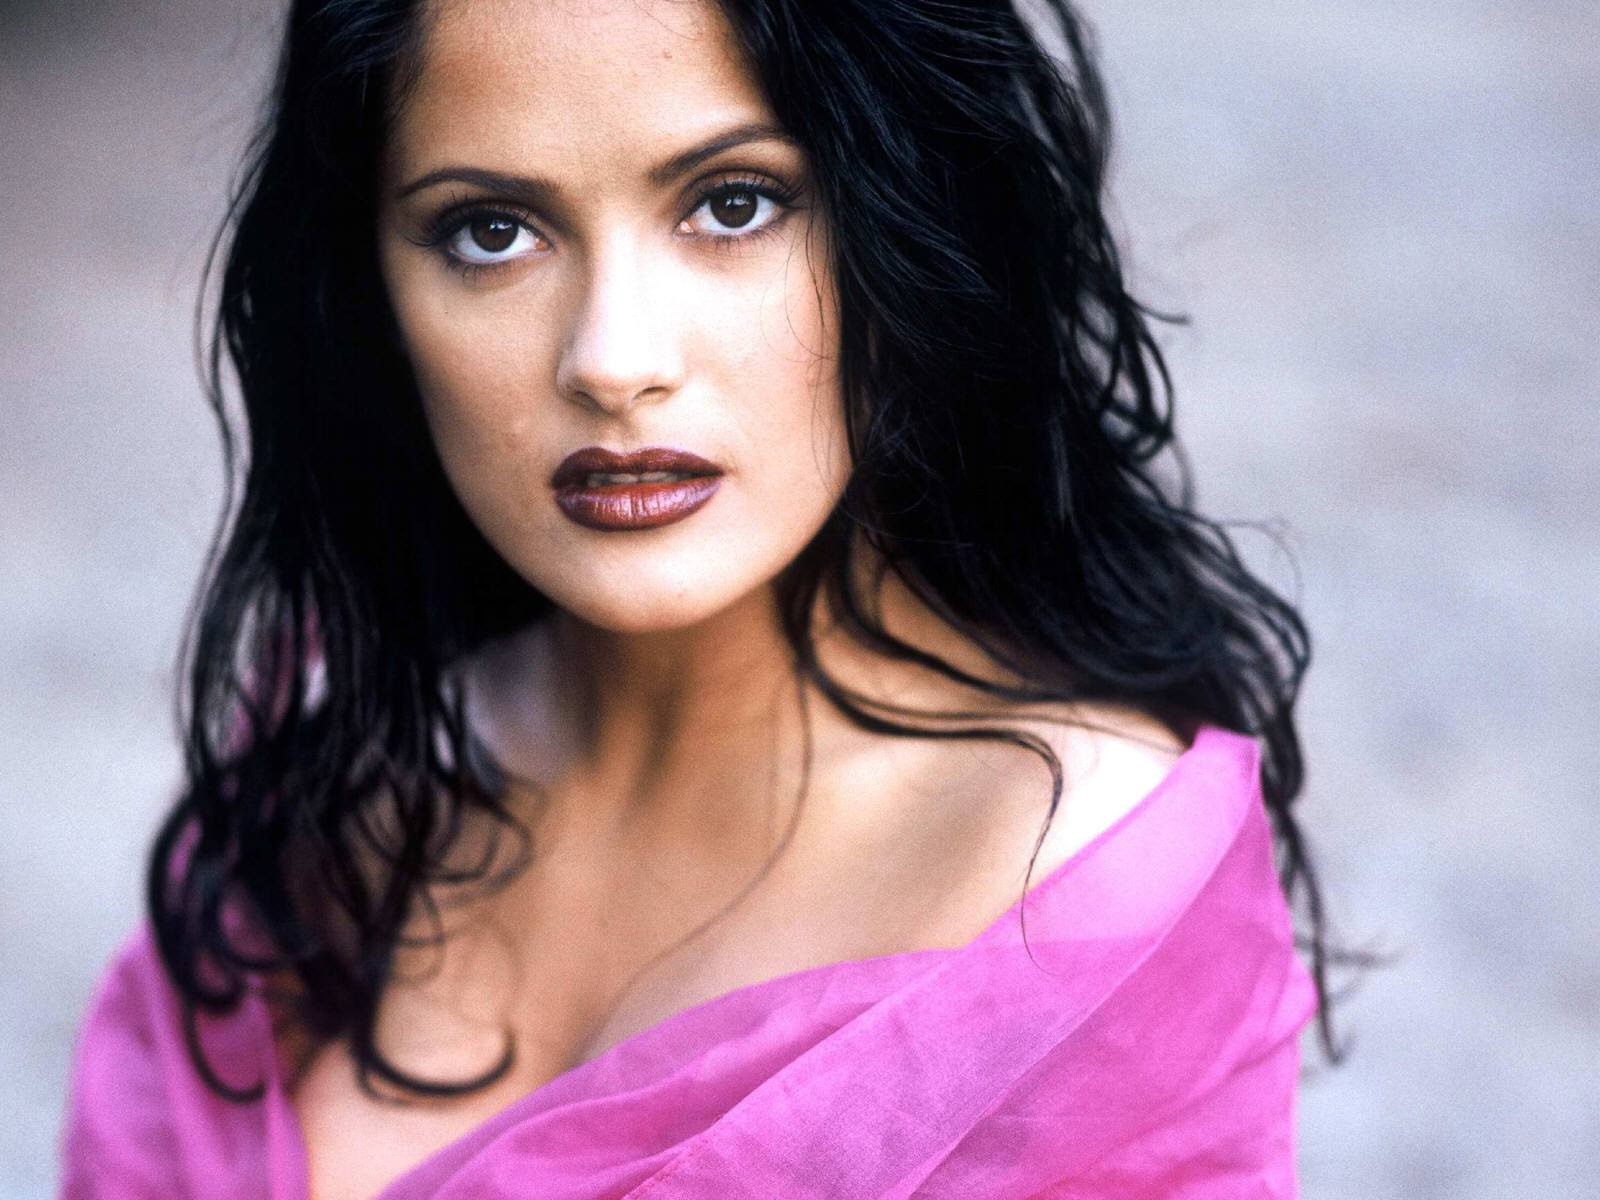 salma hayek photos wallpaper 66907